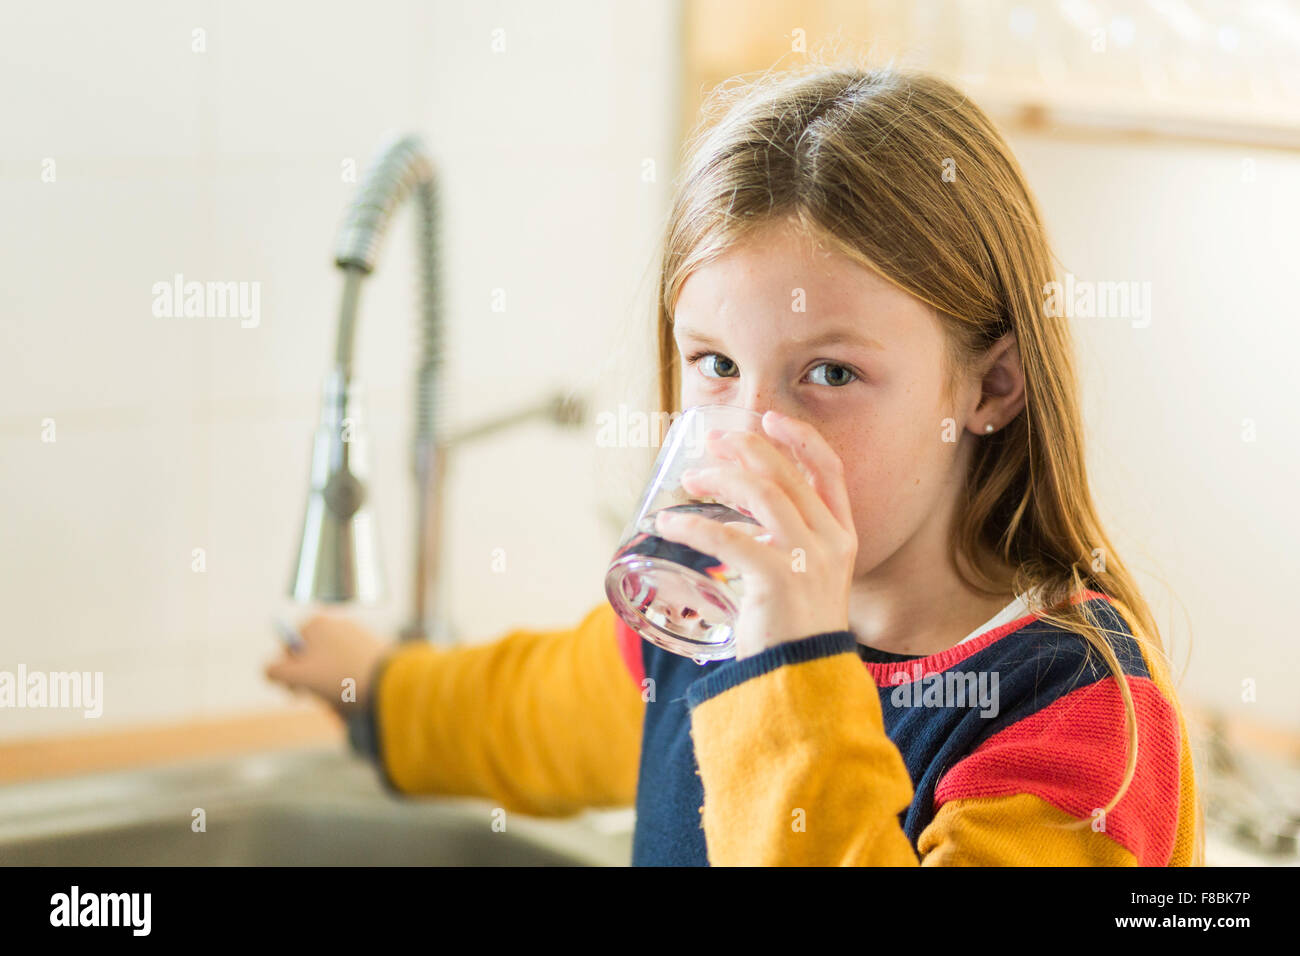 9-year-old girl drinking tap water. - Stock Image